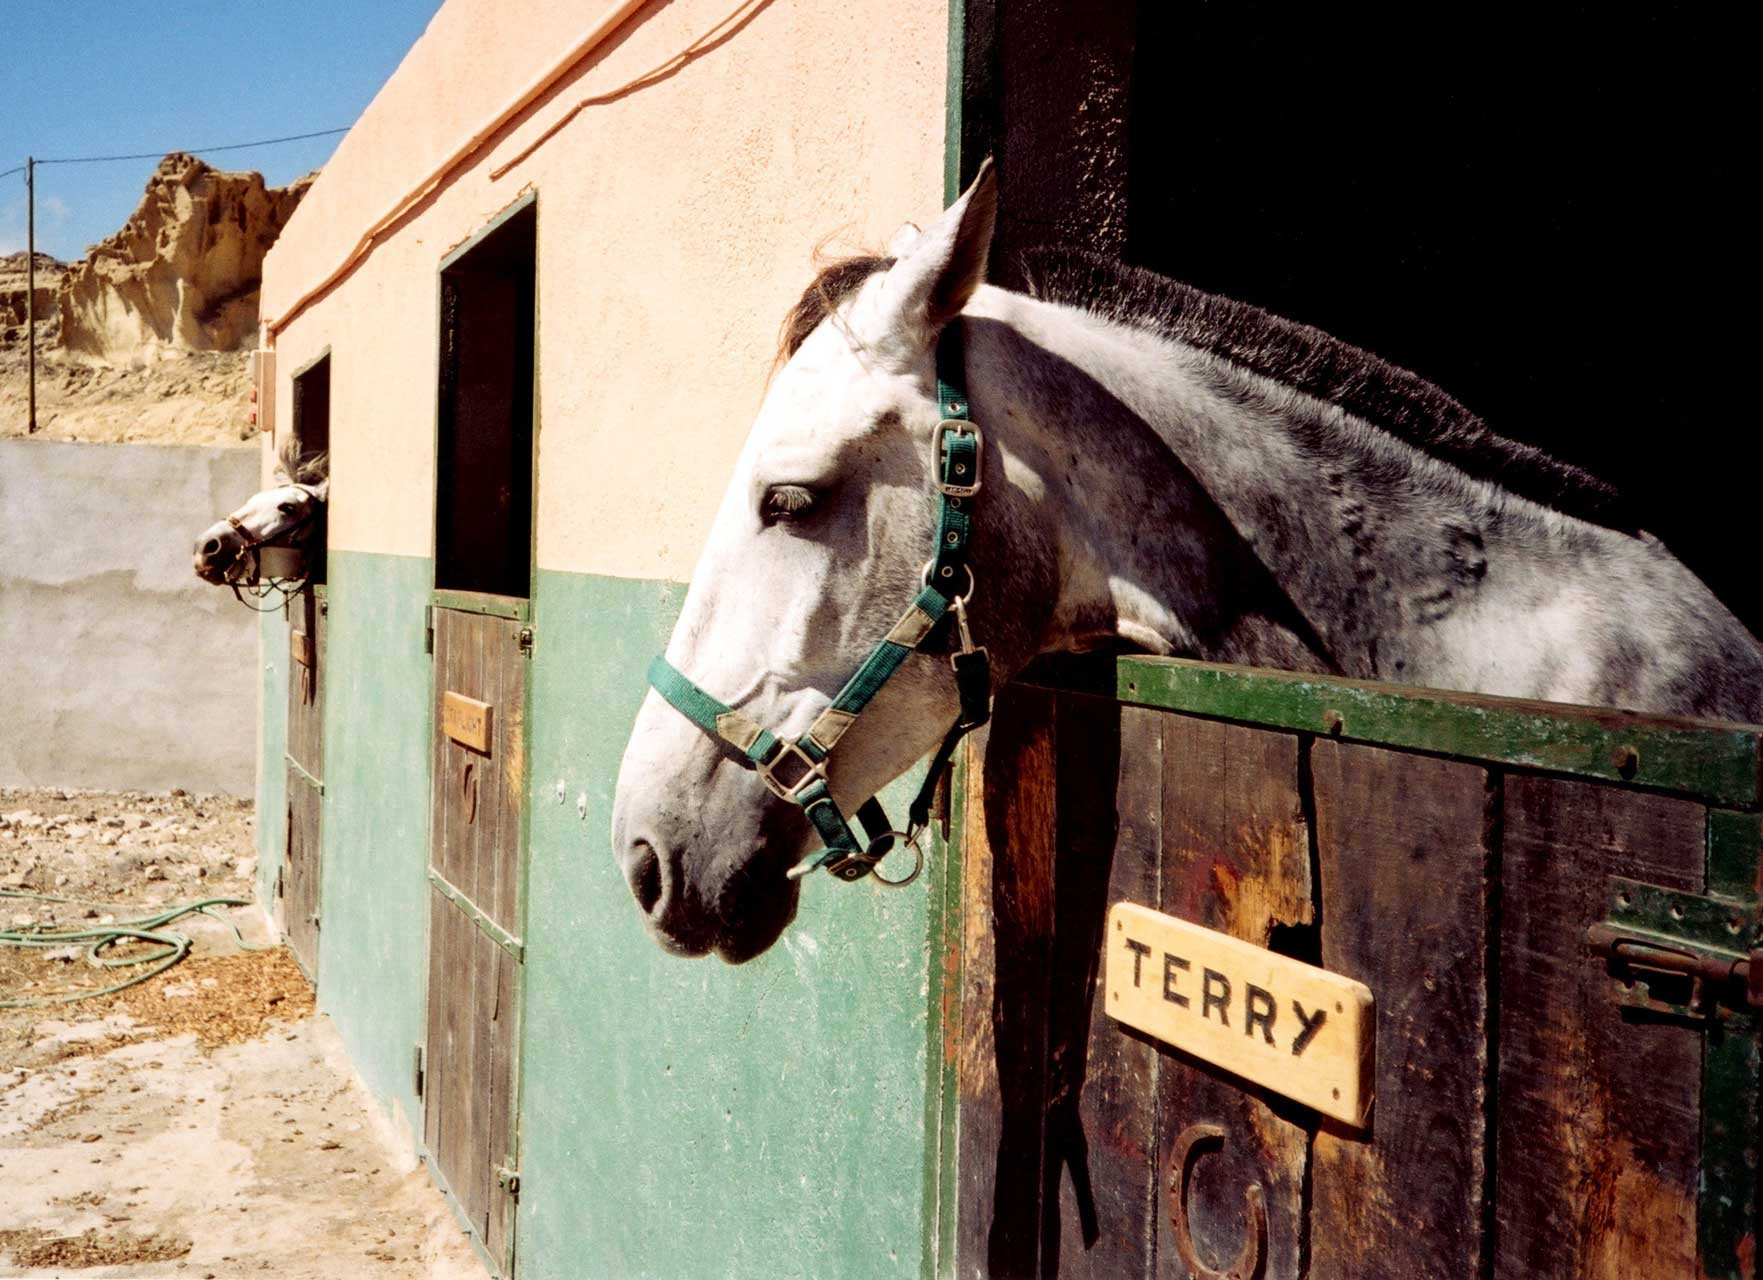 Laure-Maud_photographe_12_chevaux_Terry-Canario3